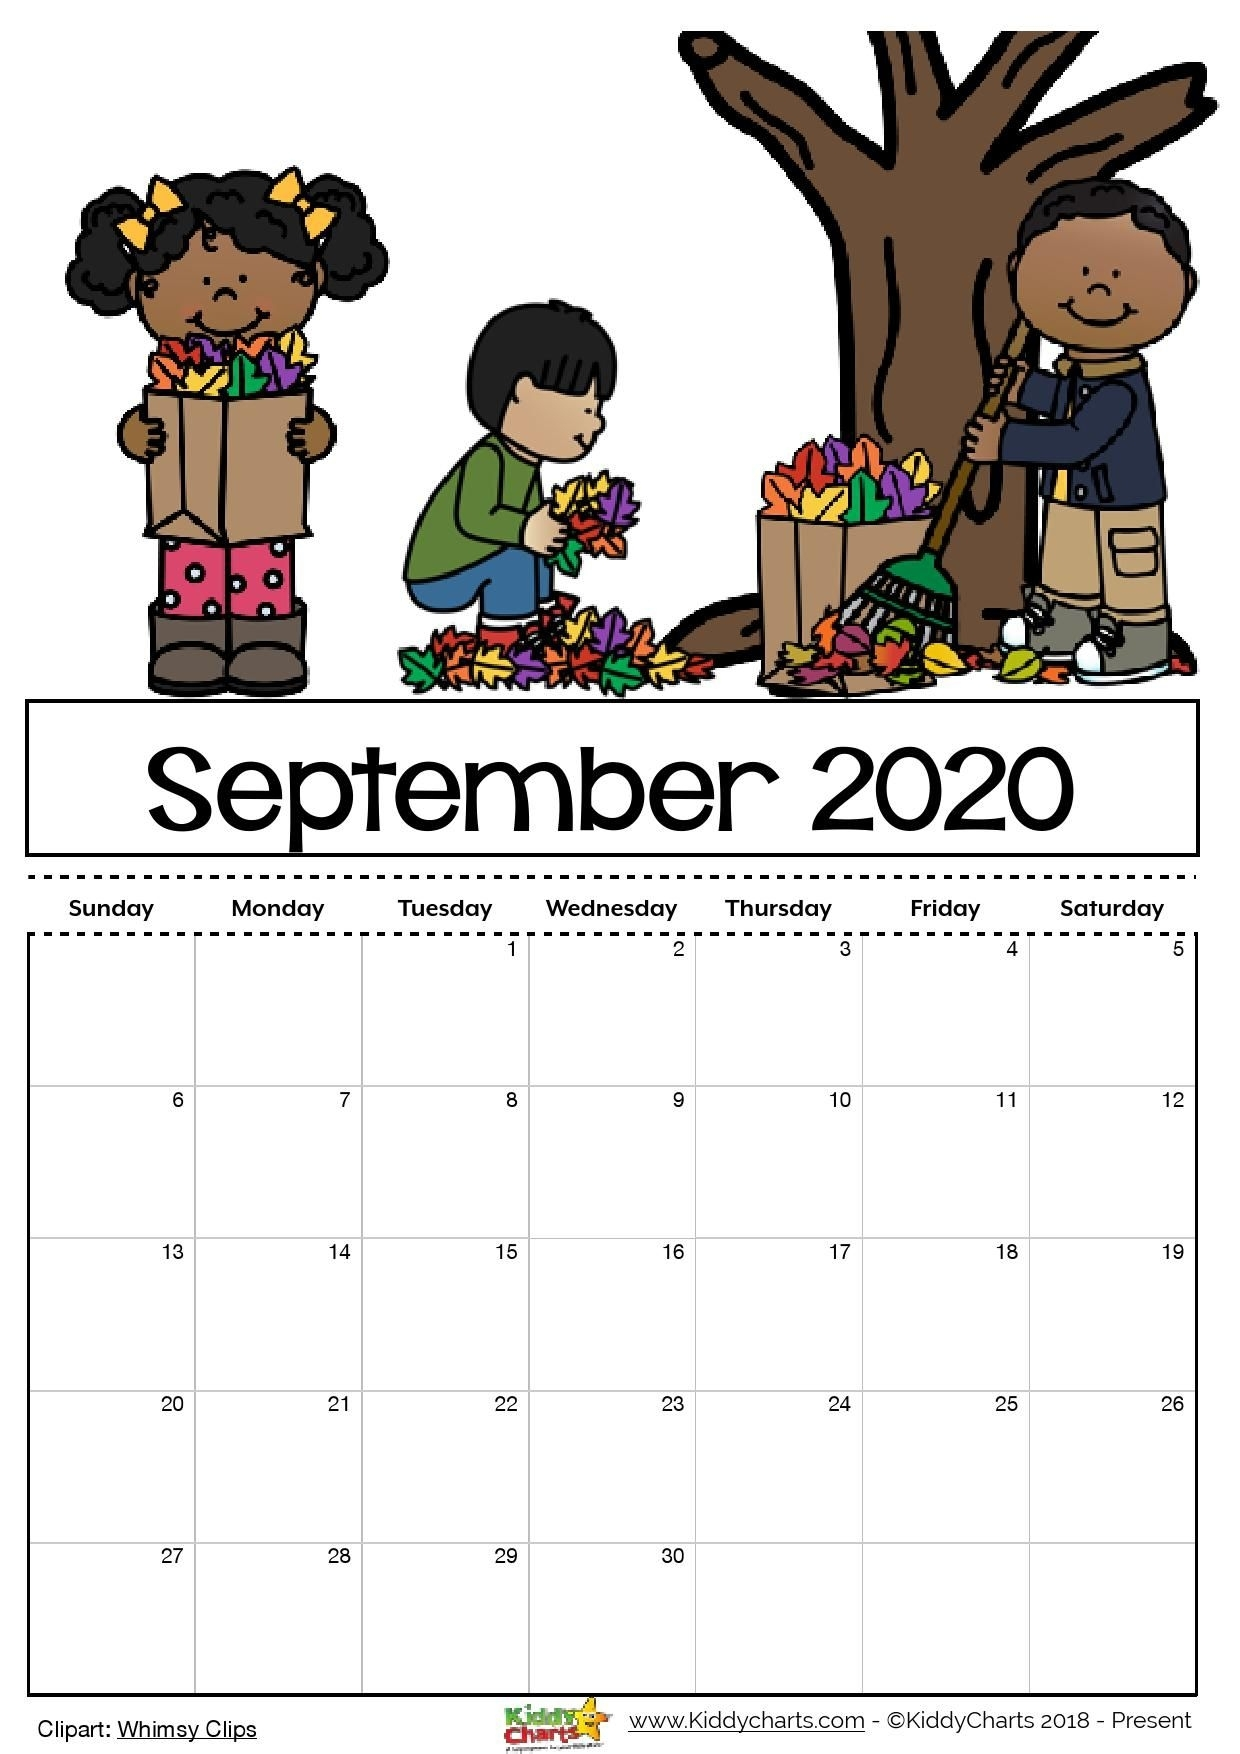 Check Out Our Free Editable 2020 Calendar Available For intended for Free Printable Children Calendars 2020 That Children Can Draw On